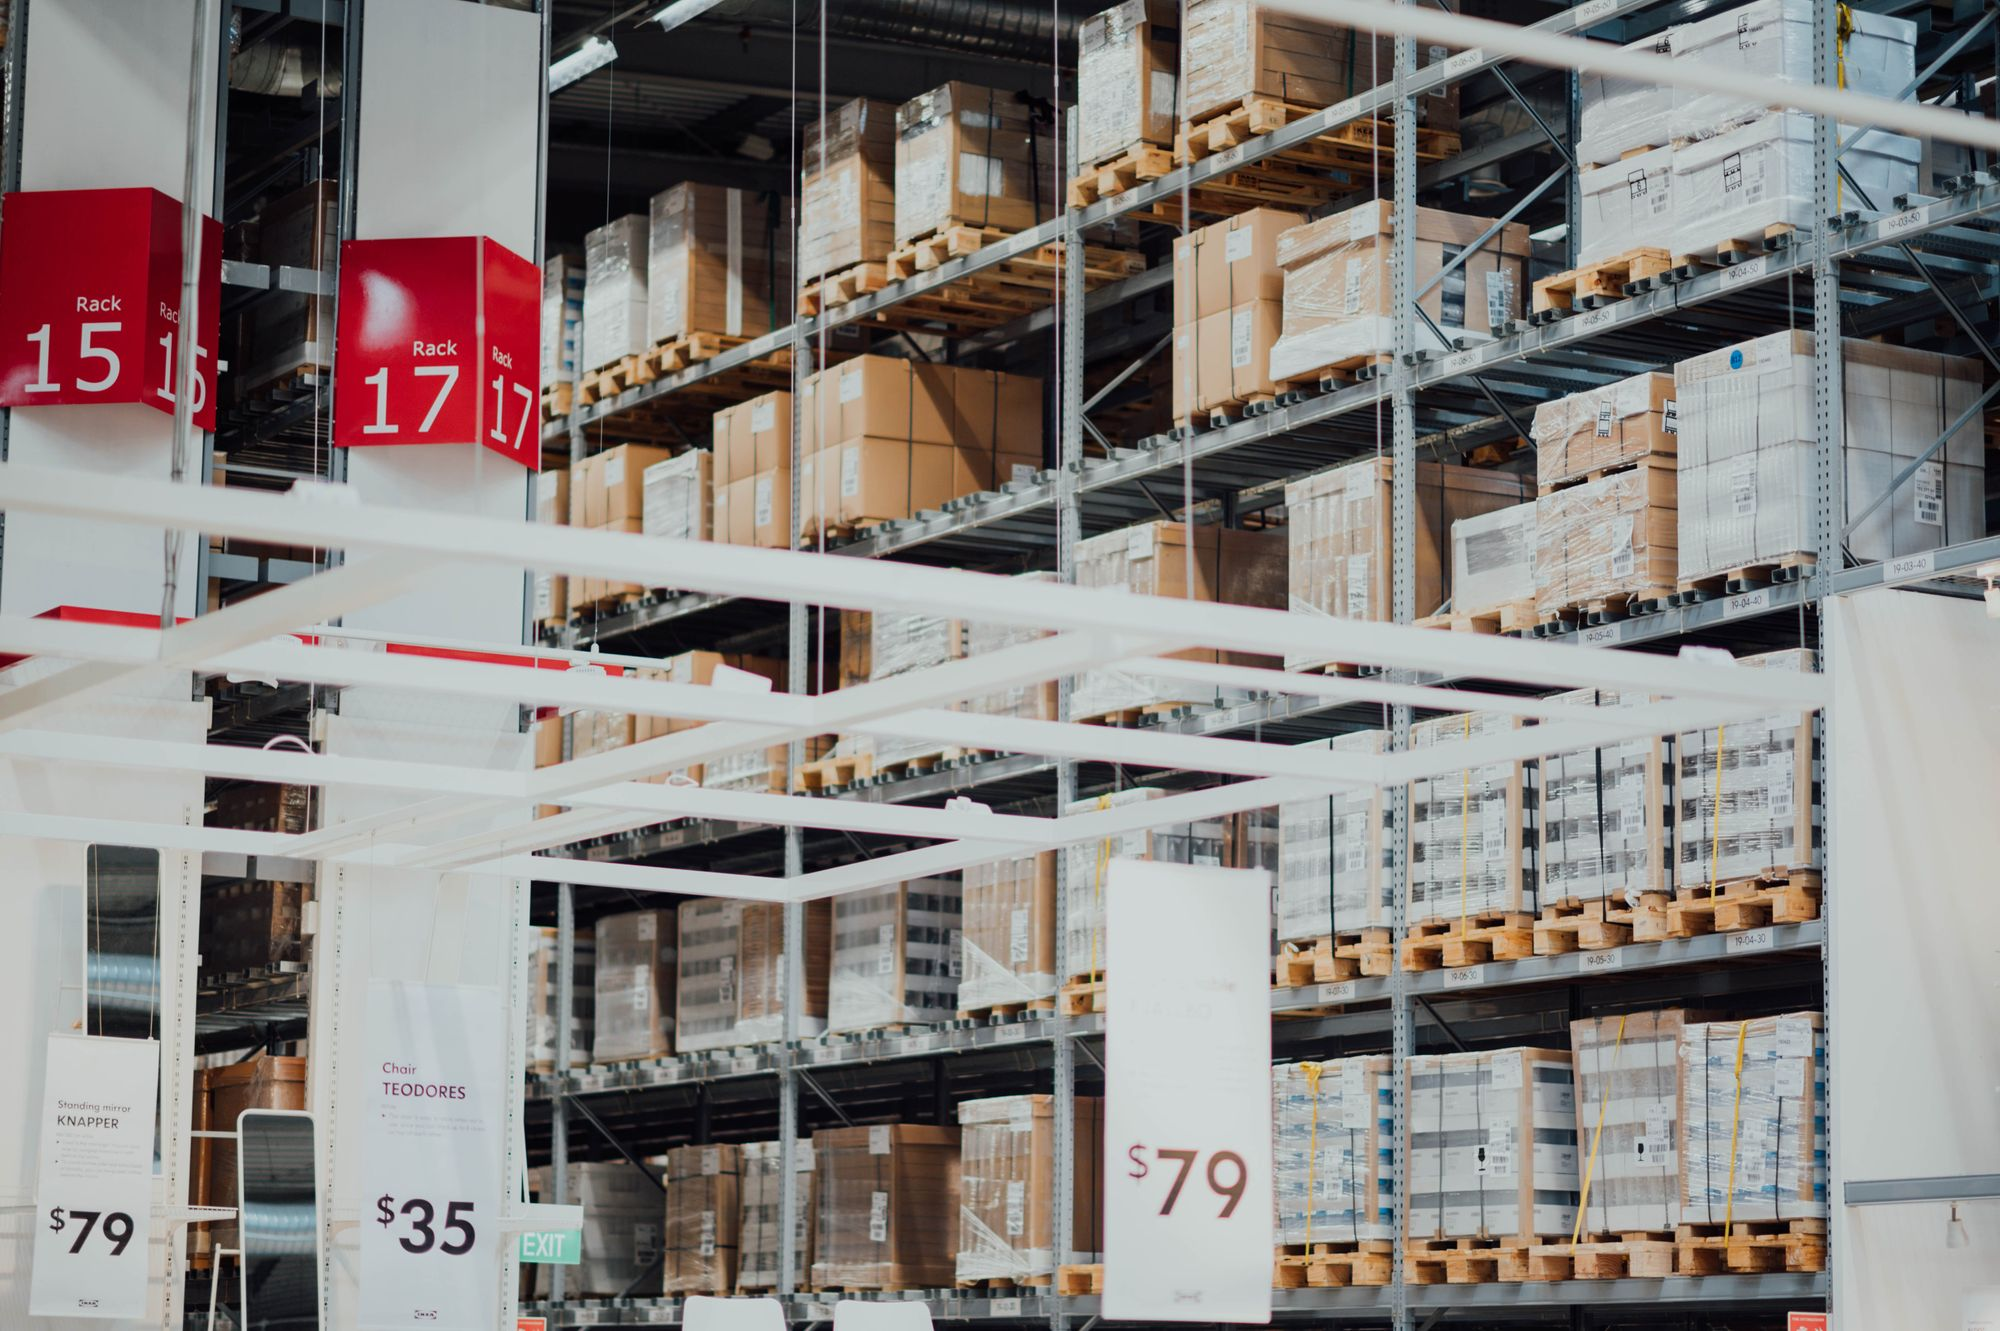 Interior of an on-demand warehouse